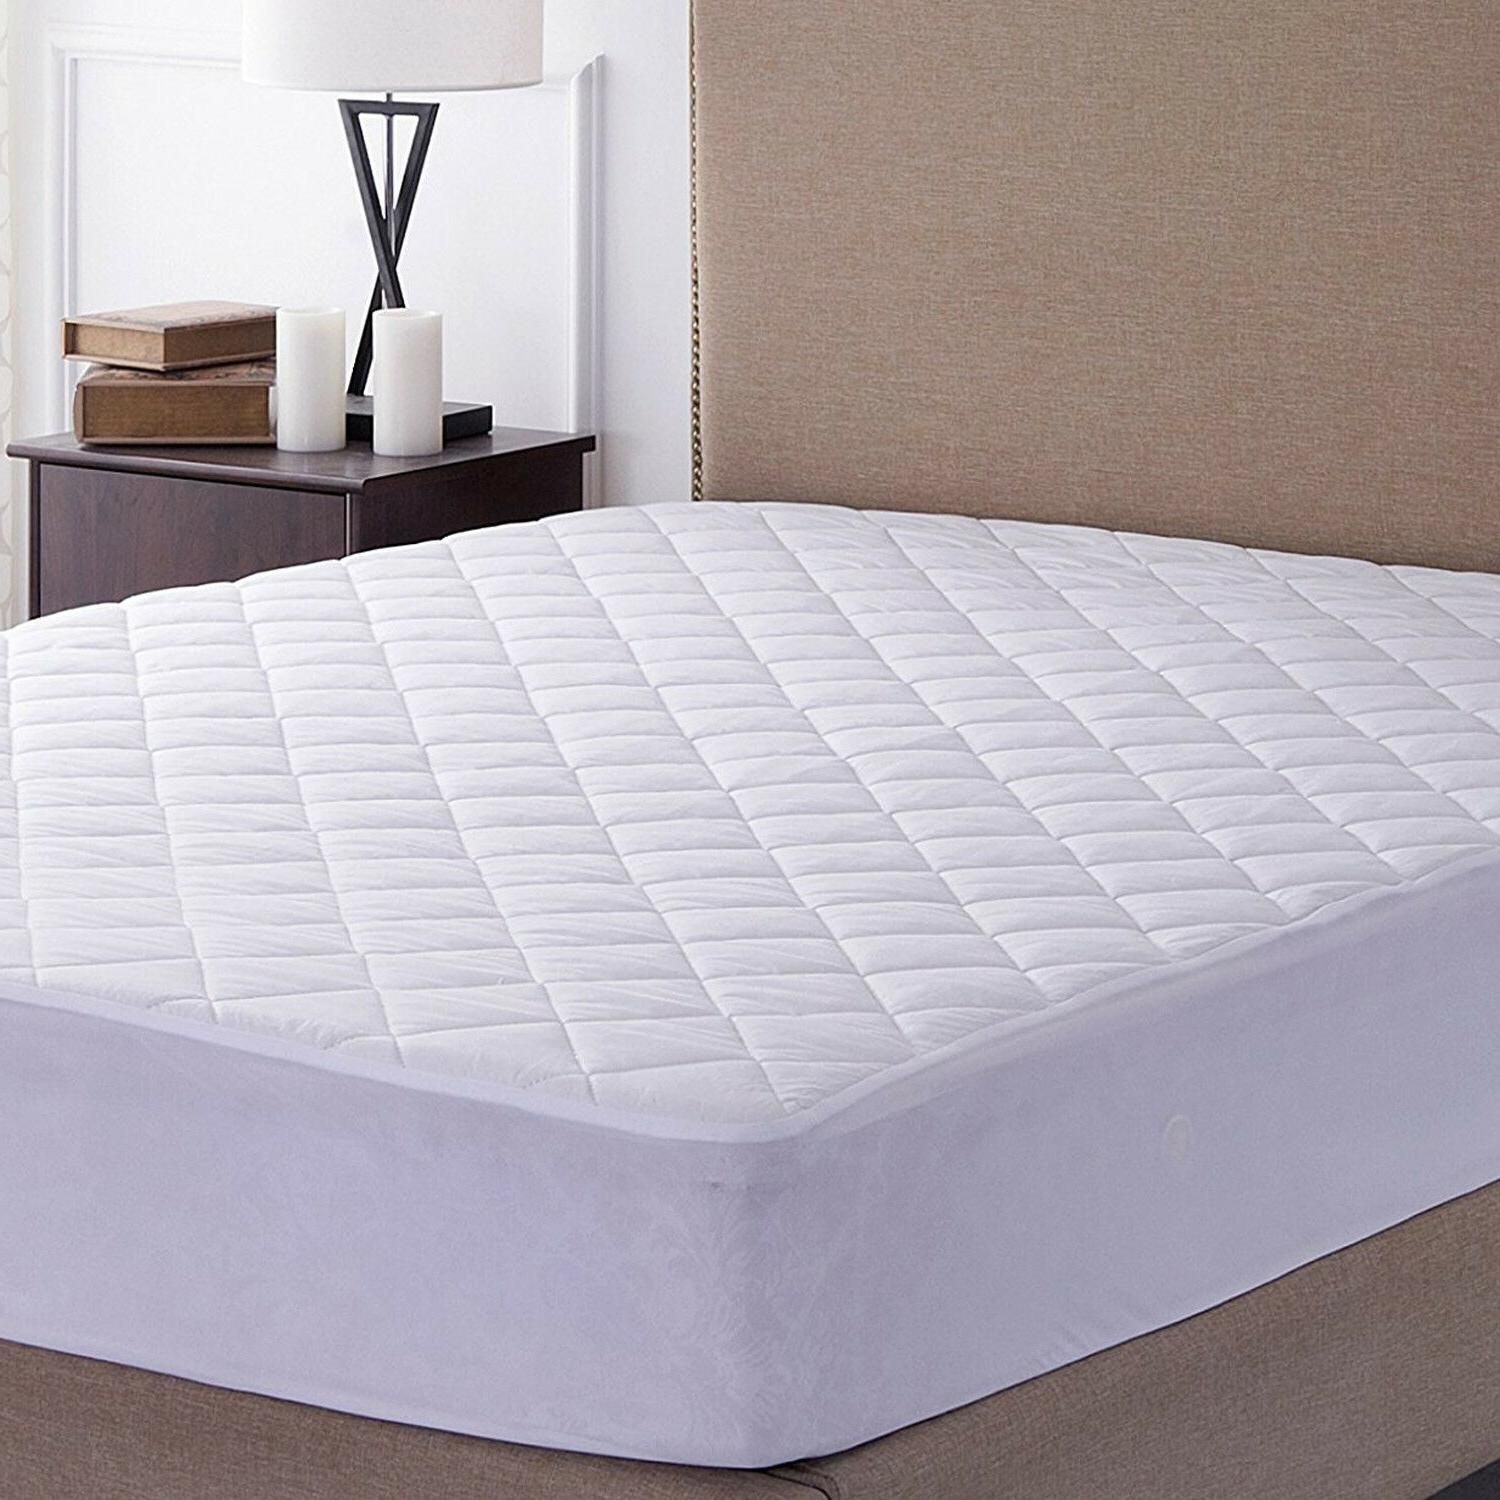 Quilted Mattress Pad Deep Pocket Protector 100% Cotton High